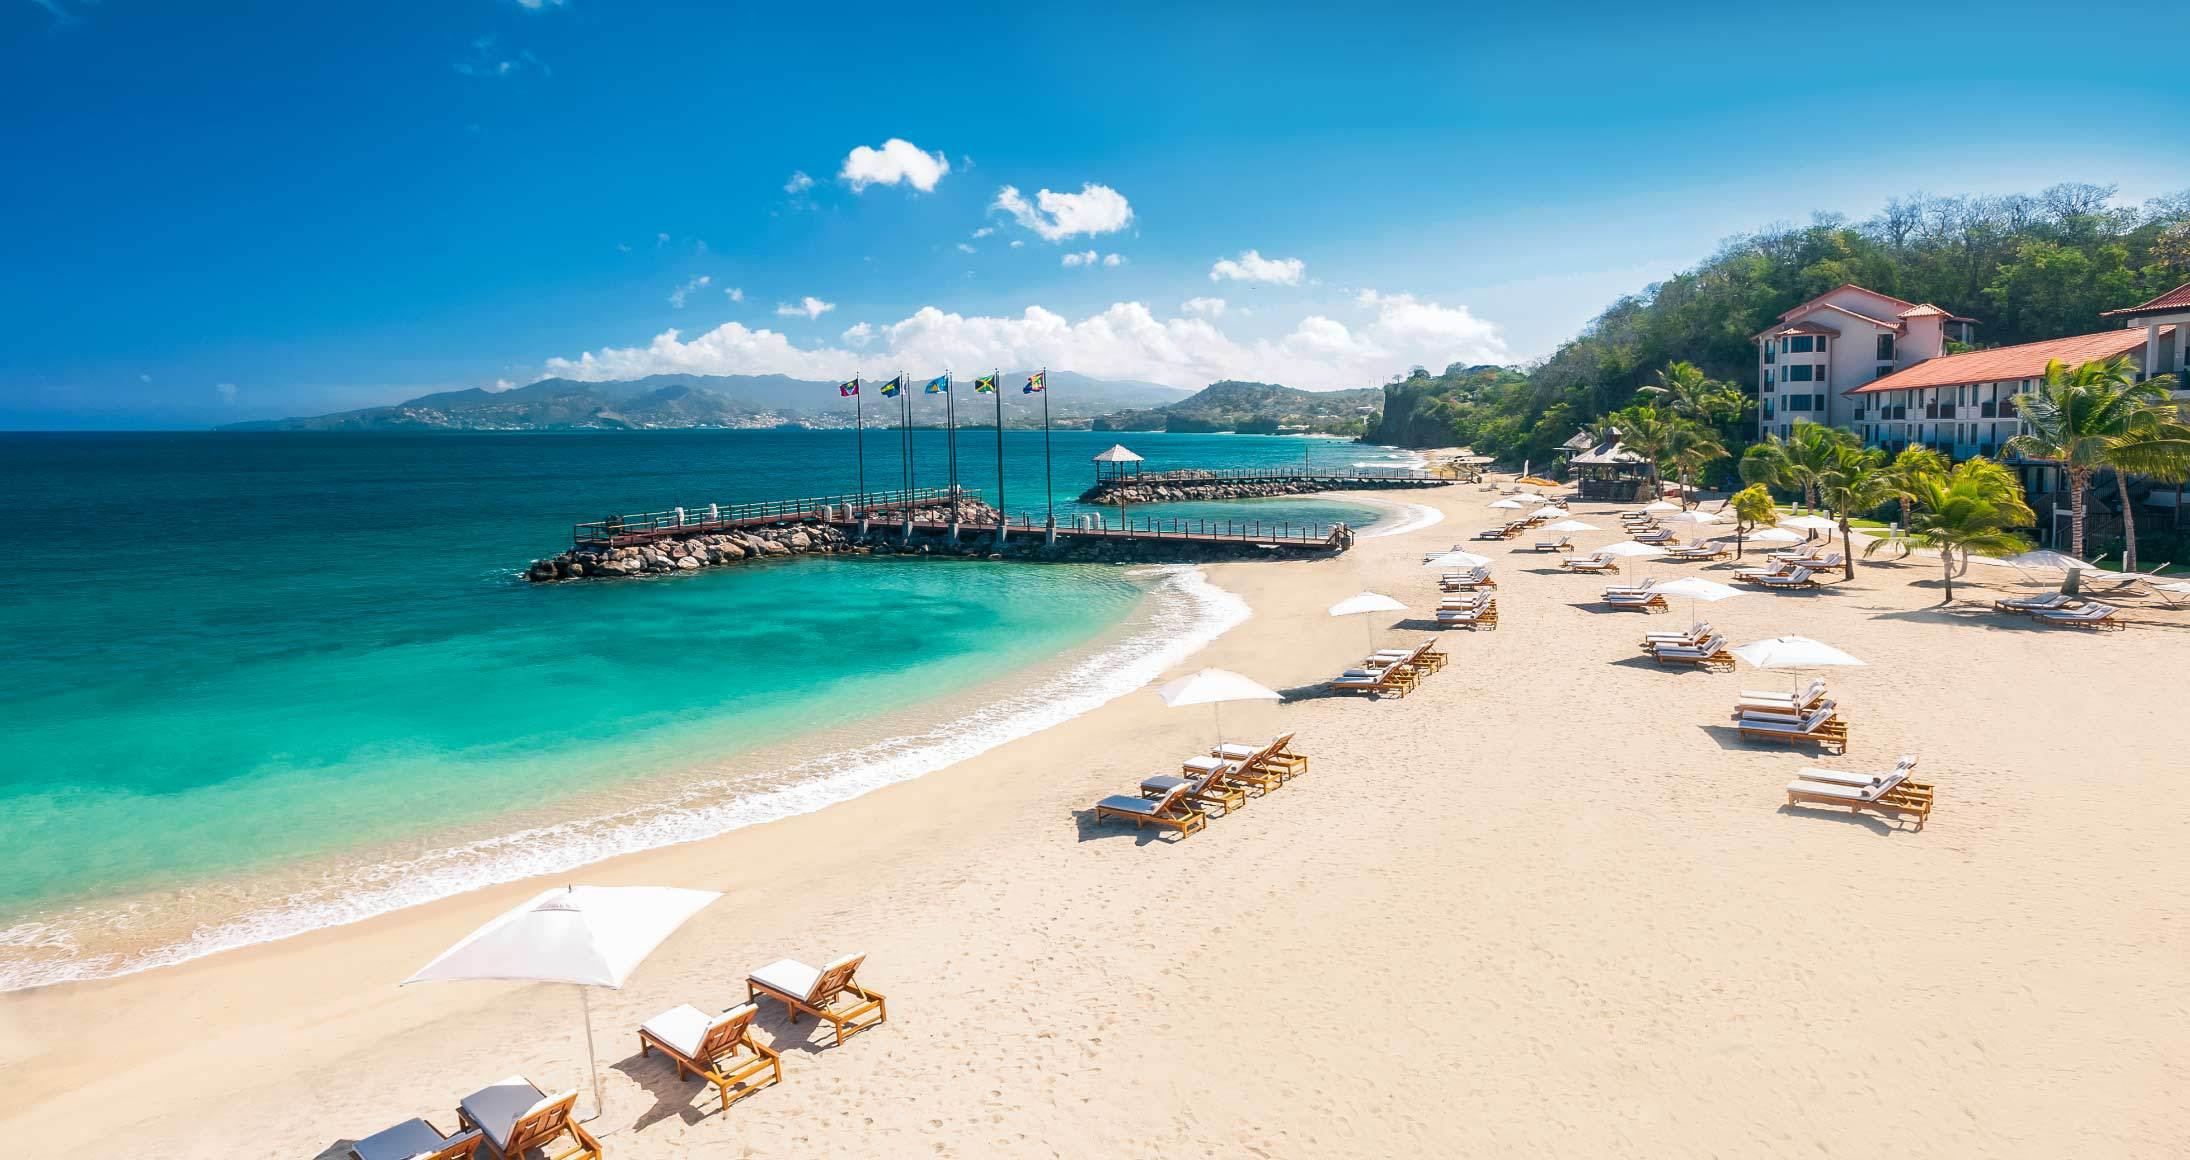 ad10b7989 Sandals Grenada - All-Inclusive Resort on Pink Gin Beach